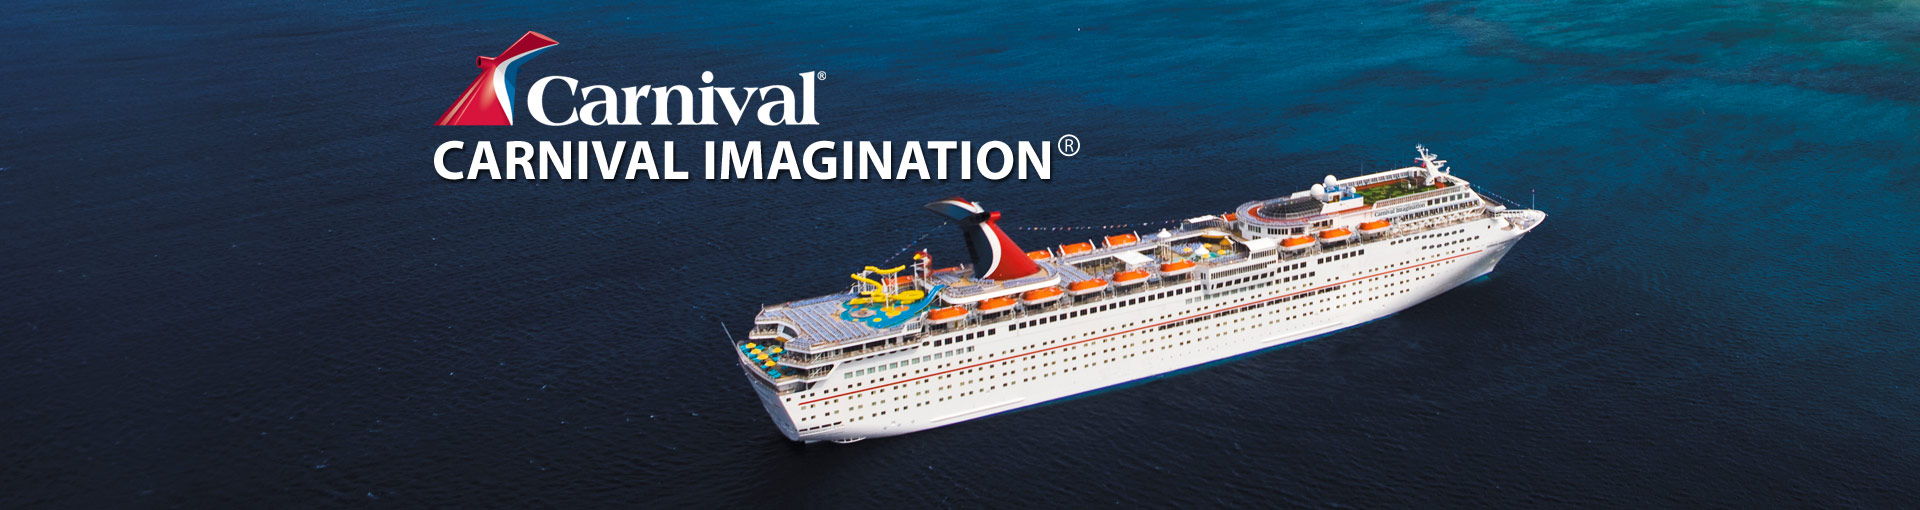 Carnival Imagination Cruise Ship 2017 And 2018 Carnival Imagination Destinat